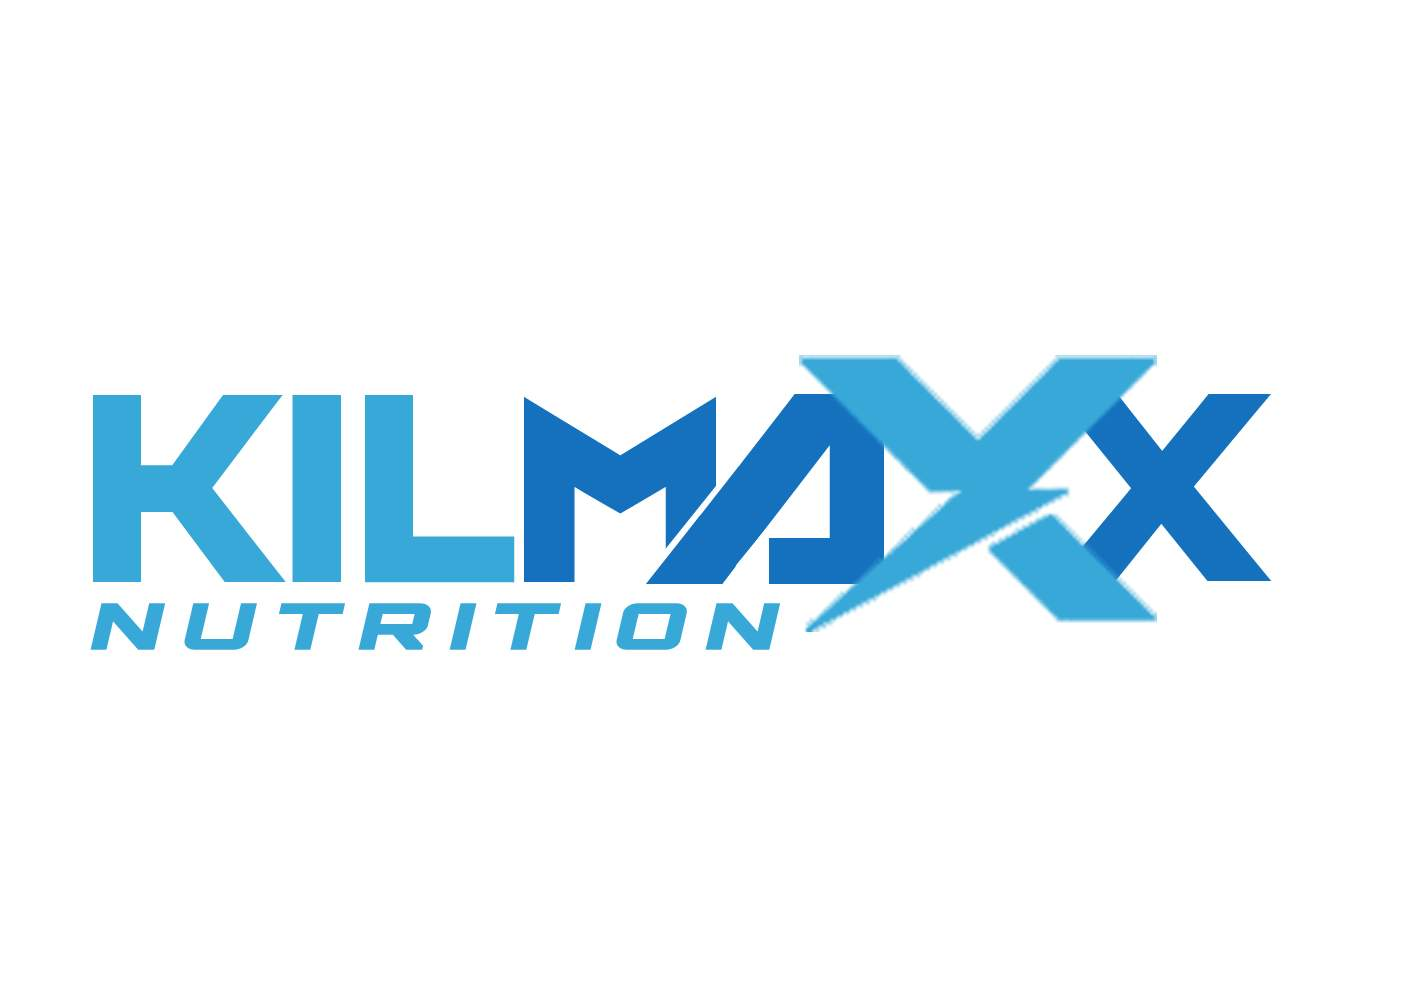 Kilmaxx Nutrition